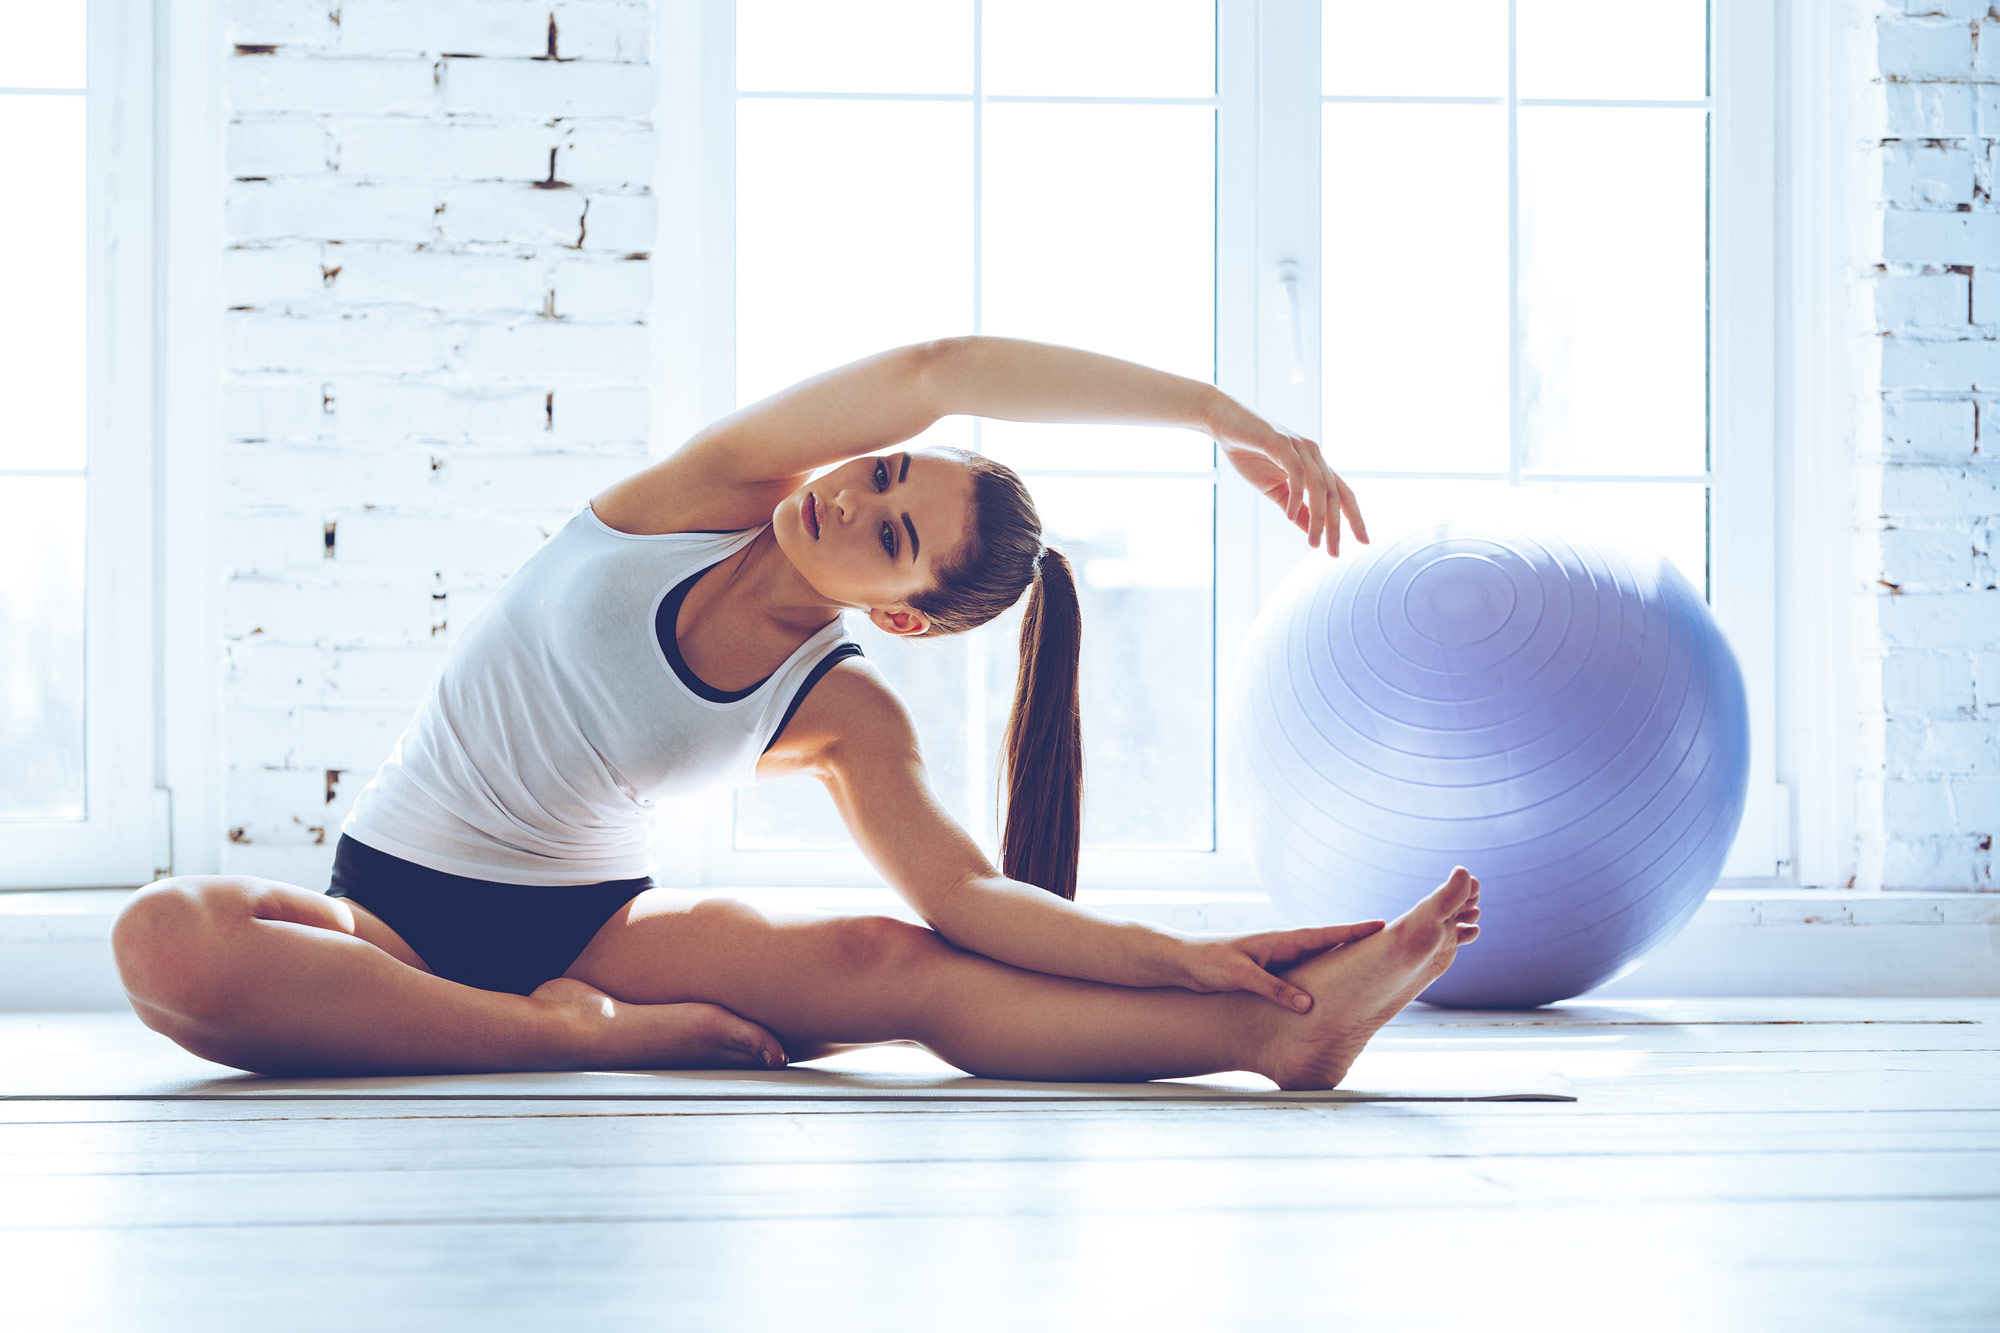 Business Marketing for Pilates and Yoga Business Marketing for Pilates and Yoga new photo